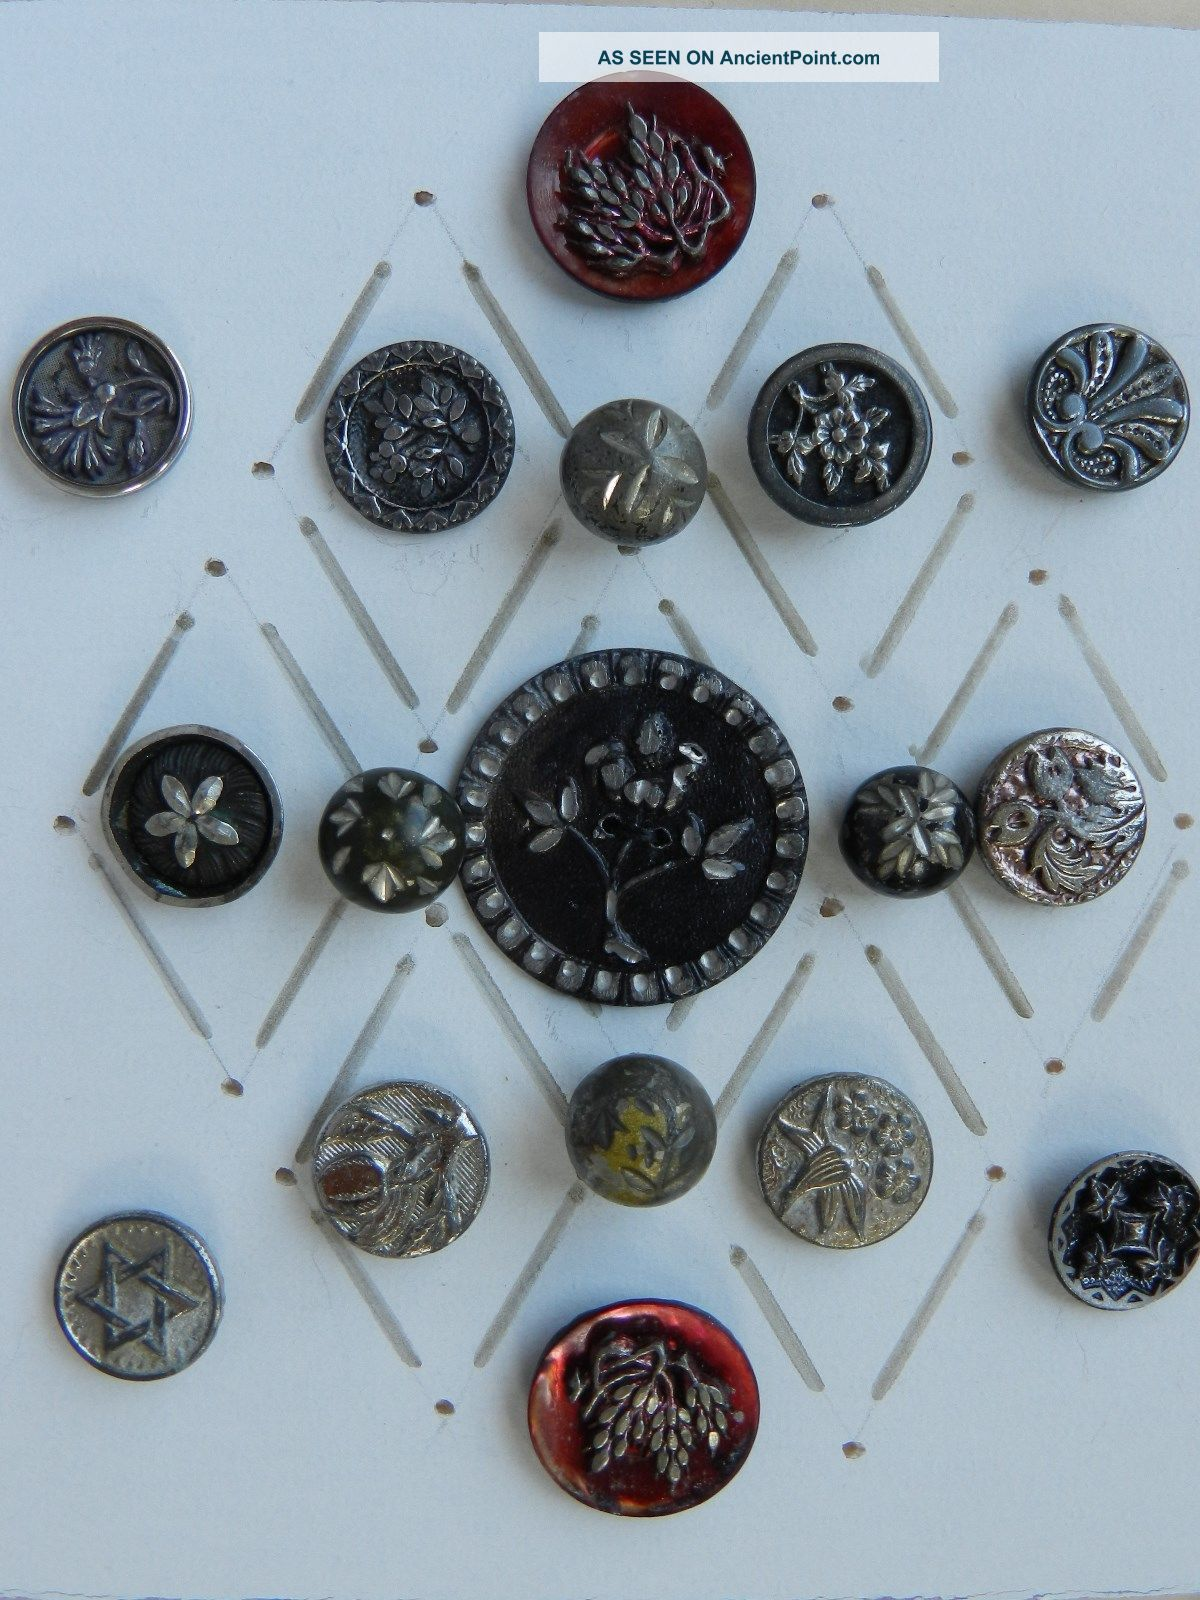 17 Antique / Vintage White Metal Buttons Some With Tint Buttons photo